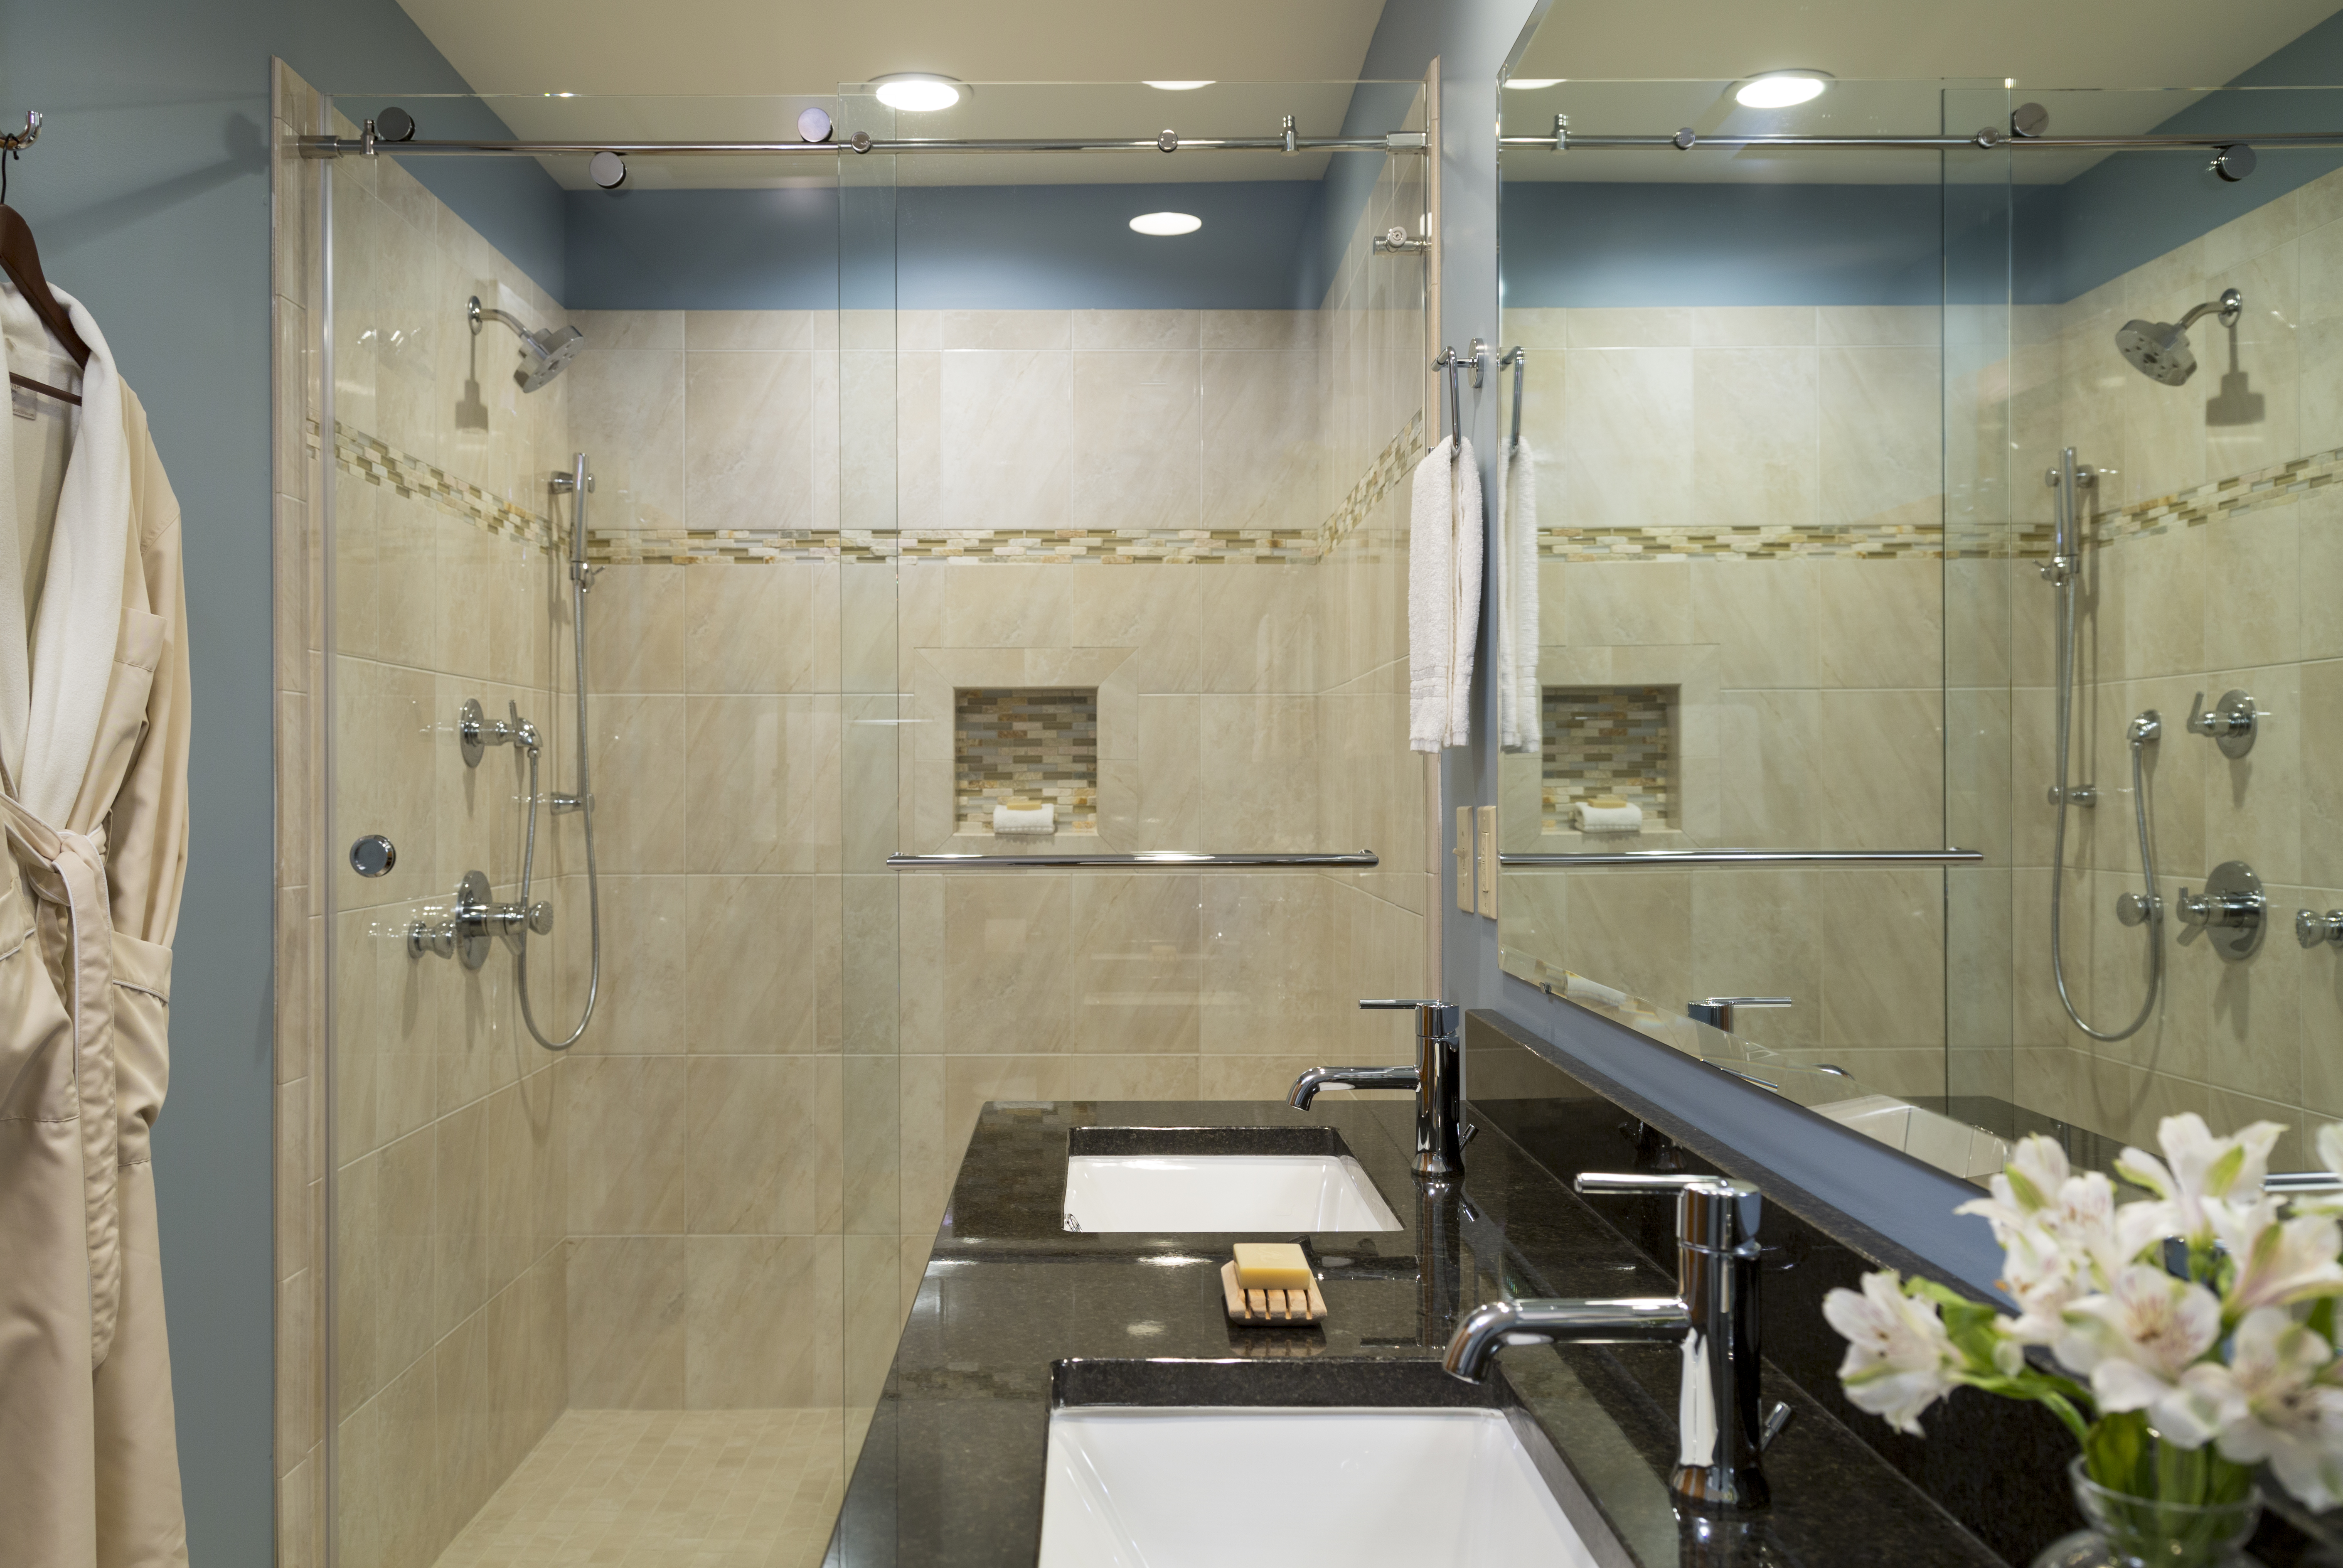 What Paint Can Be Used in the Shower? | Home Guides | SF Gate